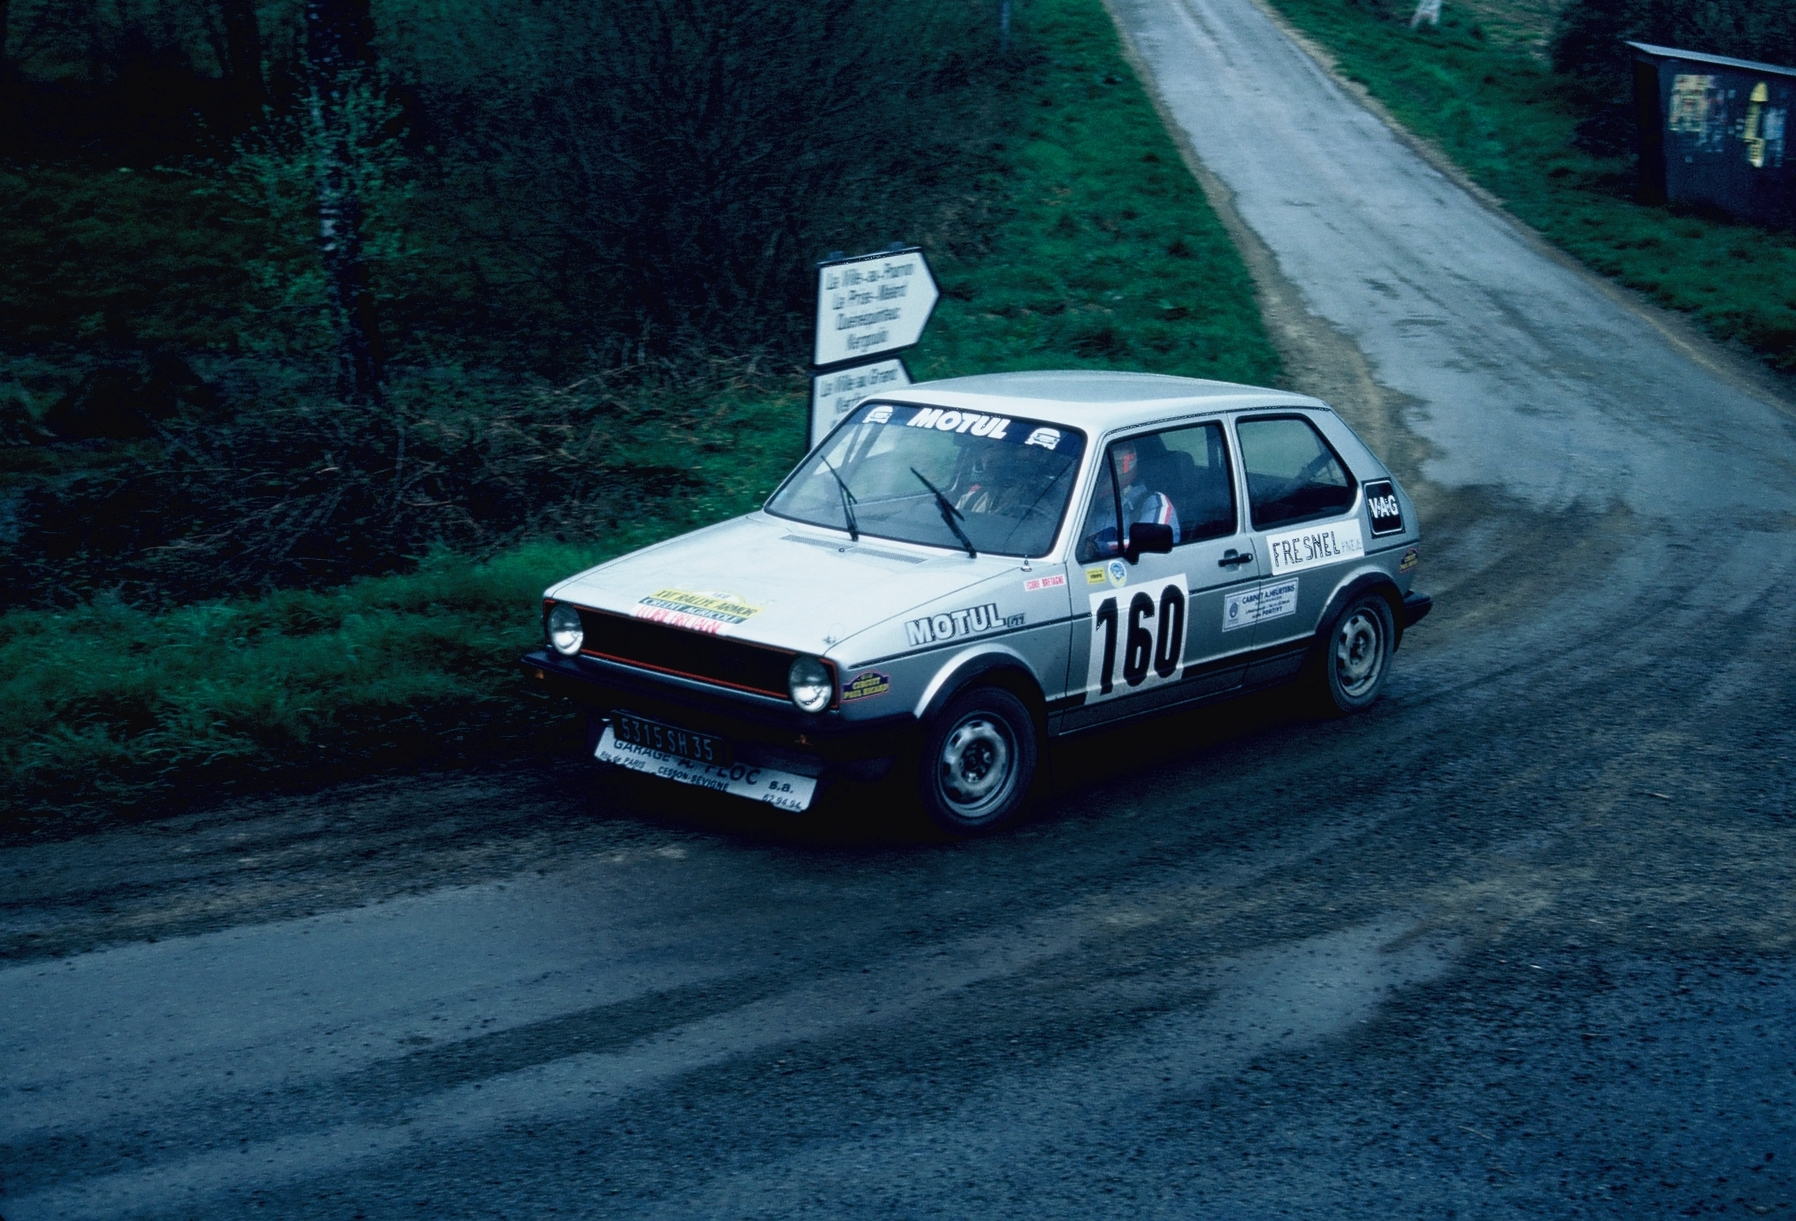 Desilles - VW Golf GTI - 1983 - Rallye-Armor - Photo TLB